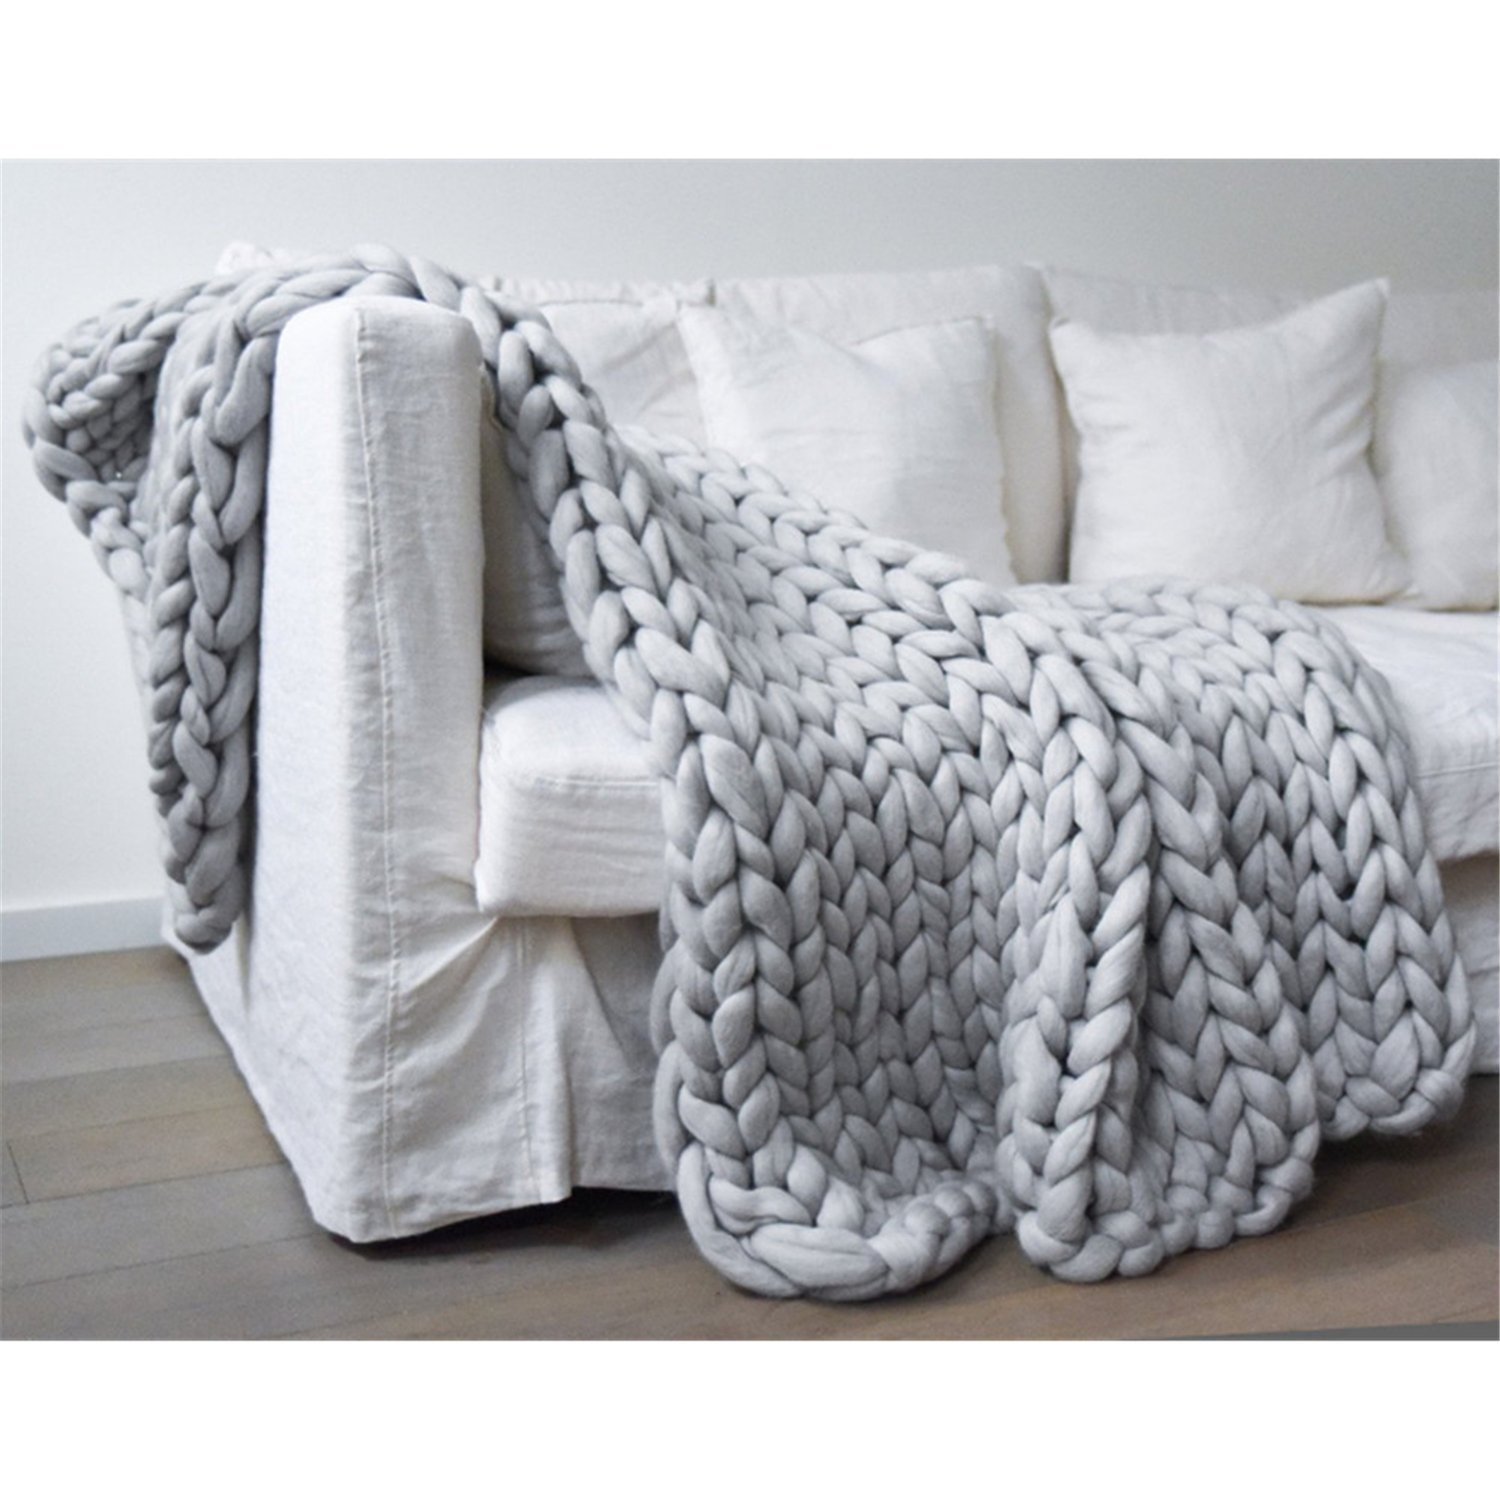 Chunky Knit Blanket Handmade Knitting Yarn Bed Sofa Yoga Throw Super Large Home Decor (Light Grey, 51